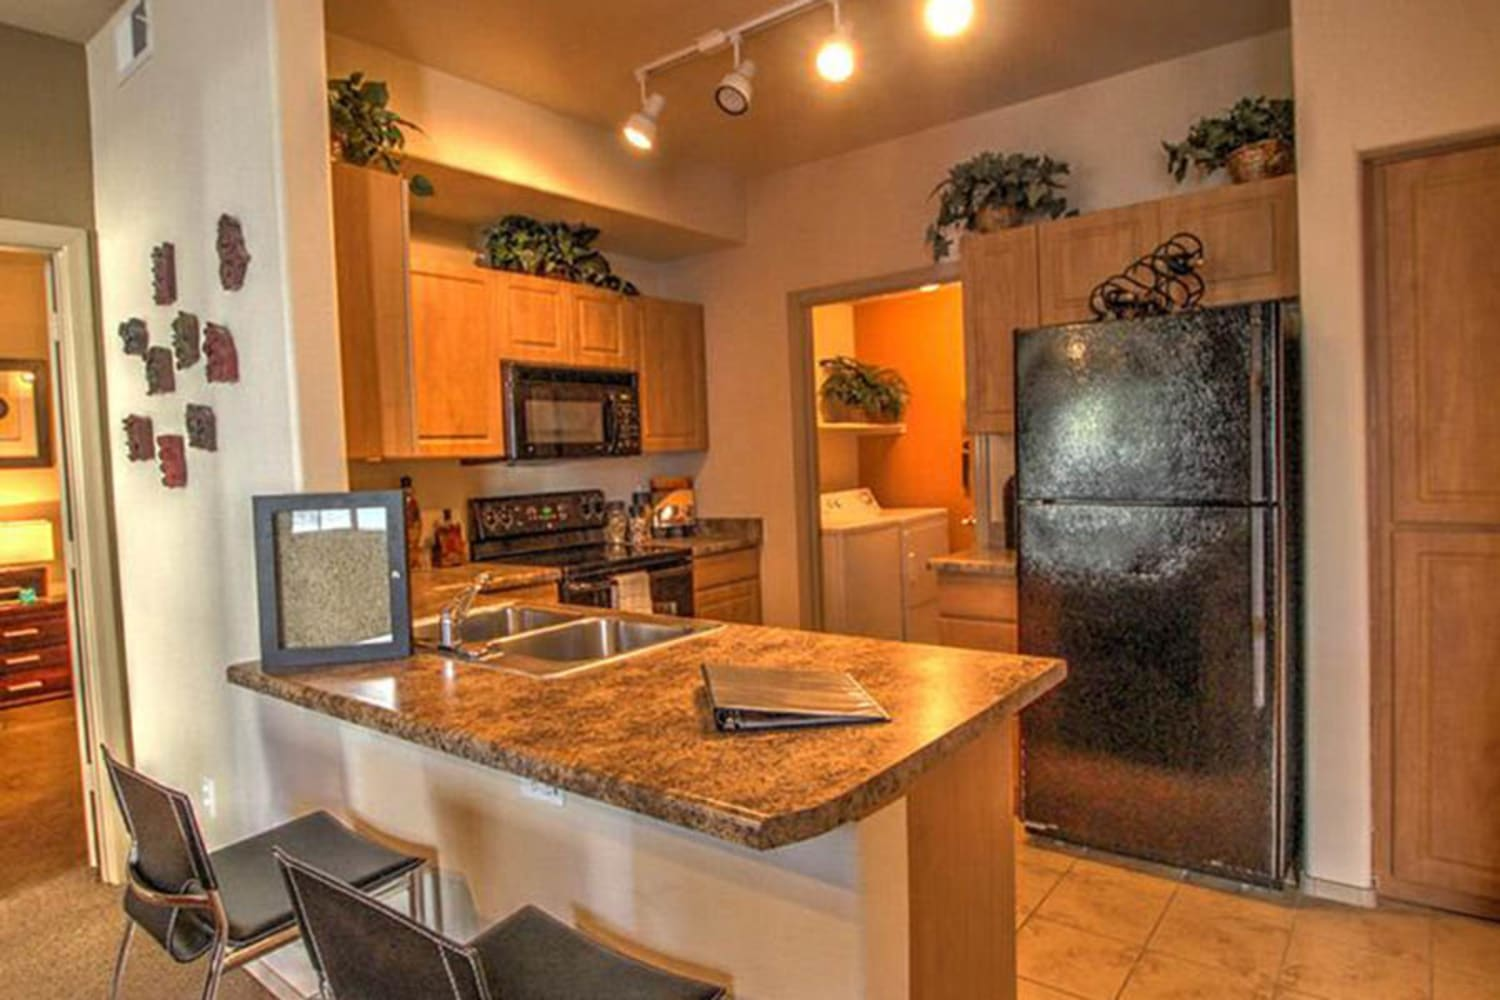 Enjoy a large kitchen at Dobson 2222 in Chandler, Arizona